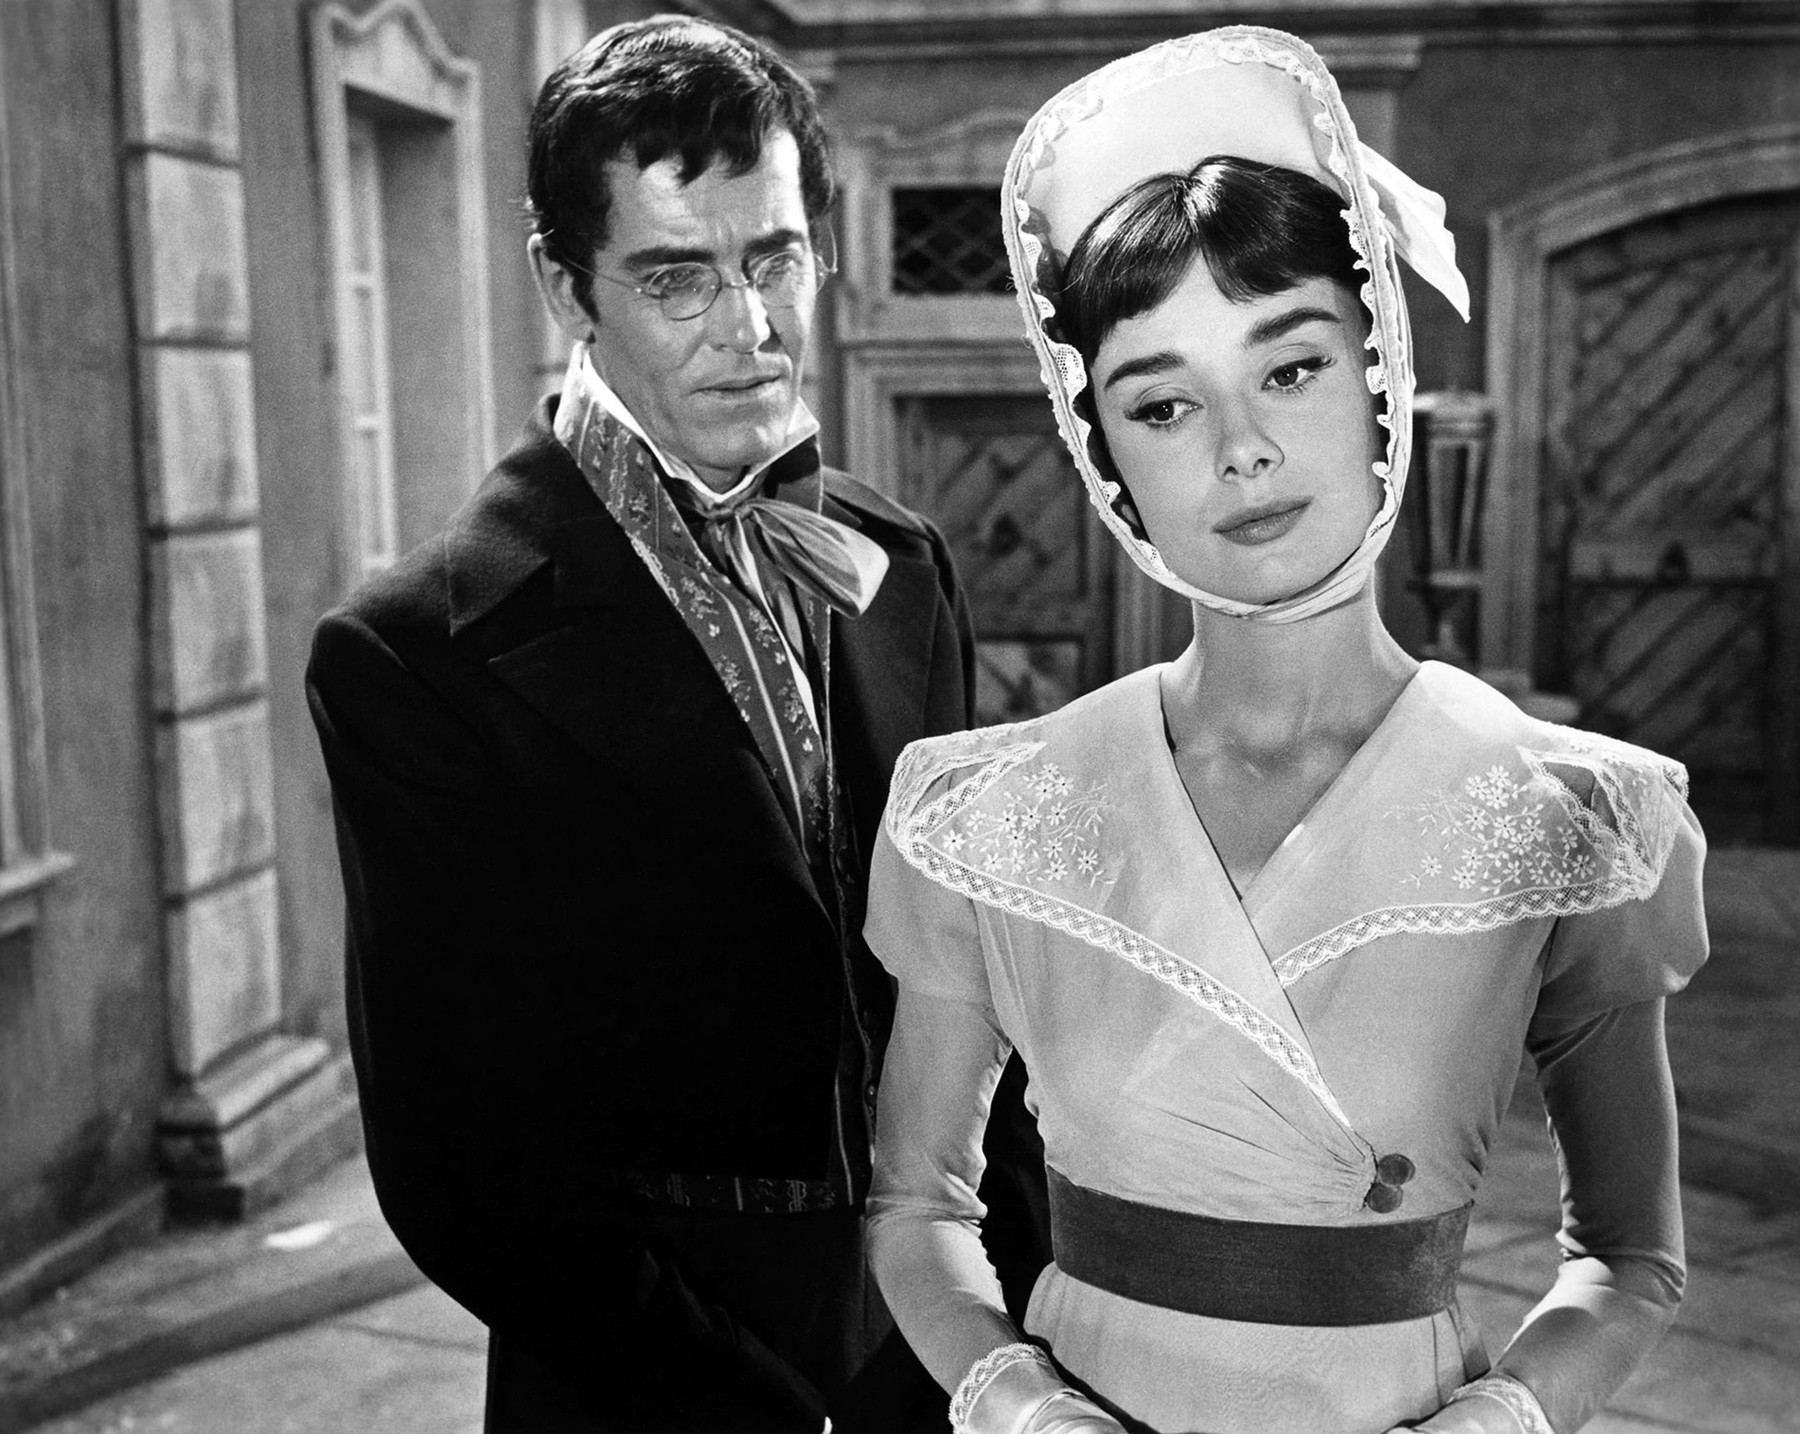 Audrey Hepburn was one of many actresses to portray Natasha Rostova, Tolstoy's ideal woman, on the screen.